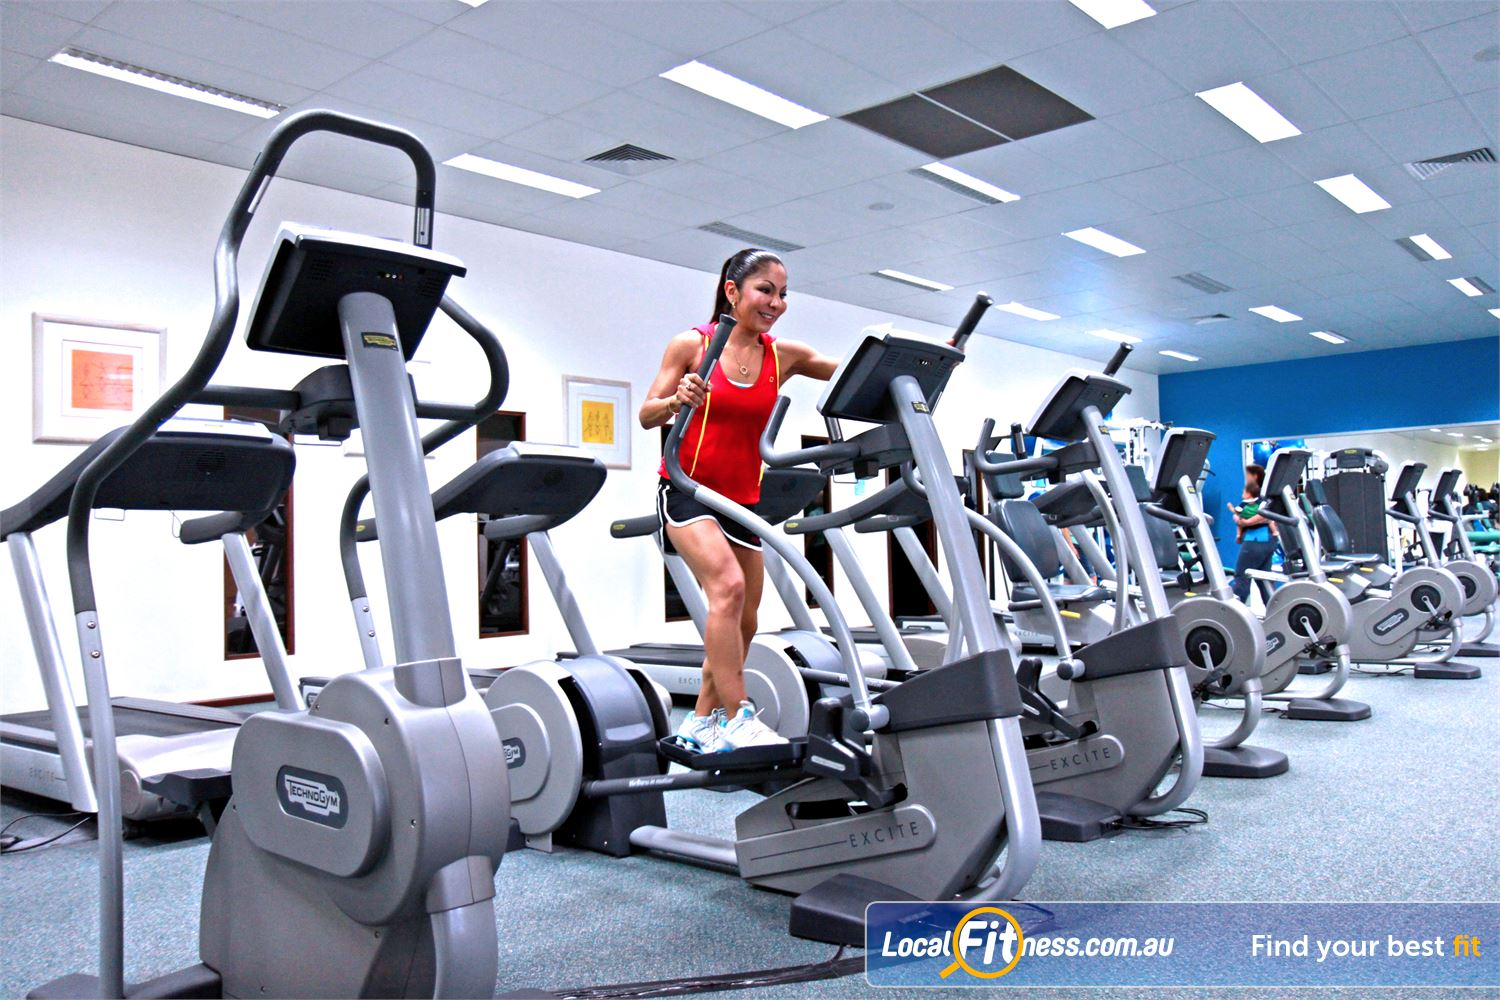 Fernwood Fitness Near Rochedale South Underwood cross trainers add variety to your cardio workout.